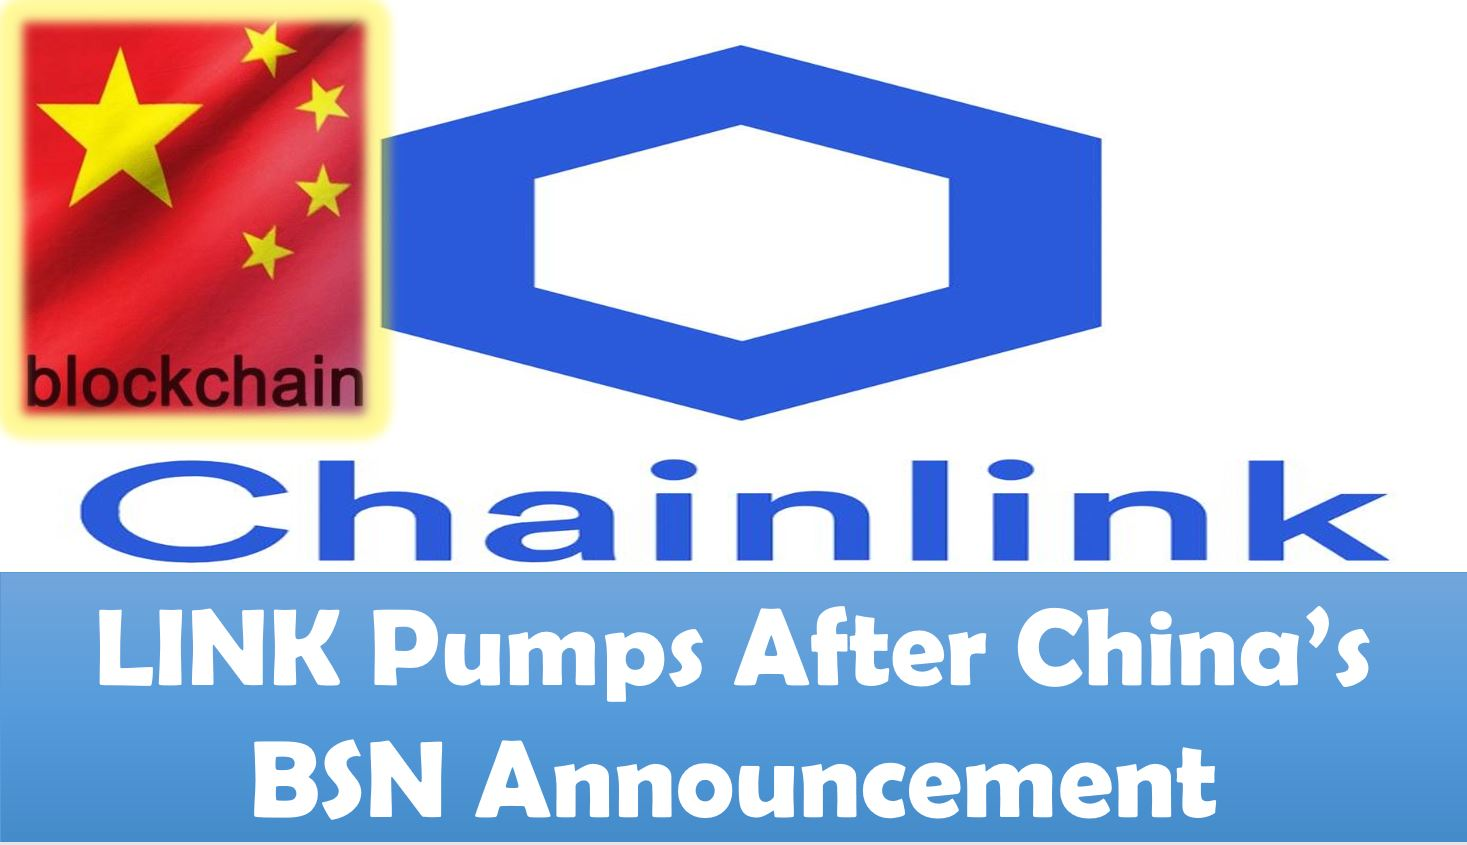 LINK Pumps After China's BSN Announcement